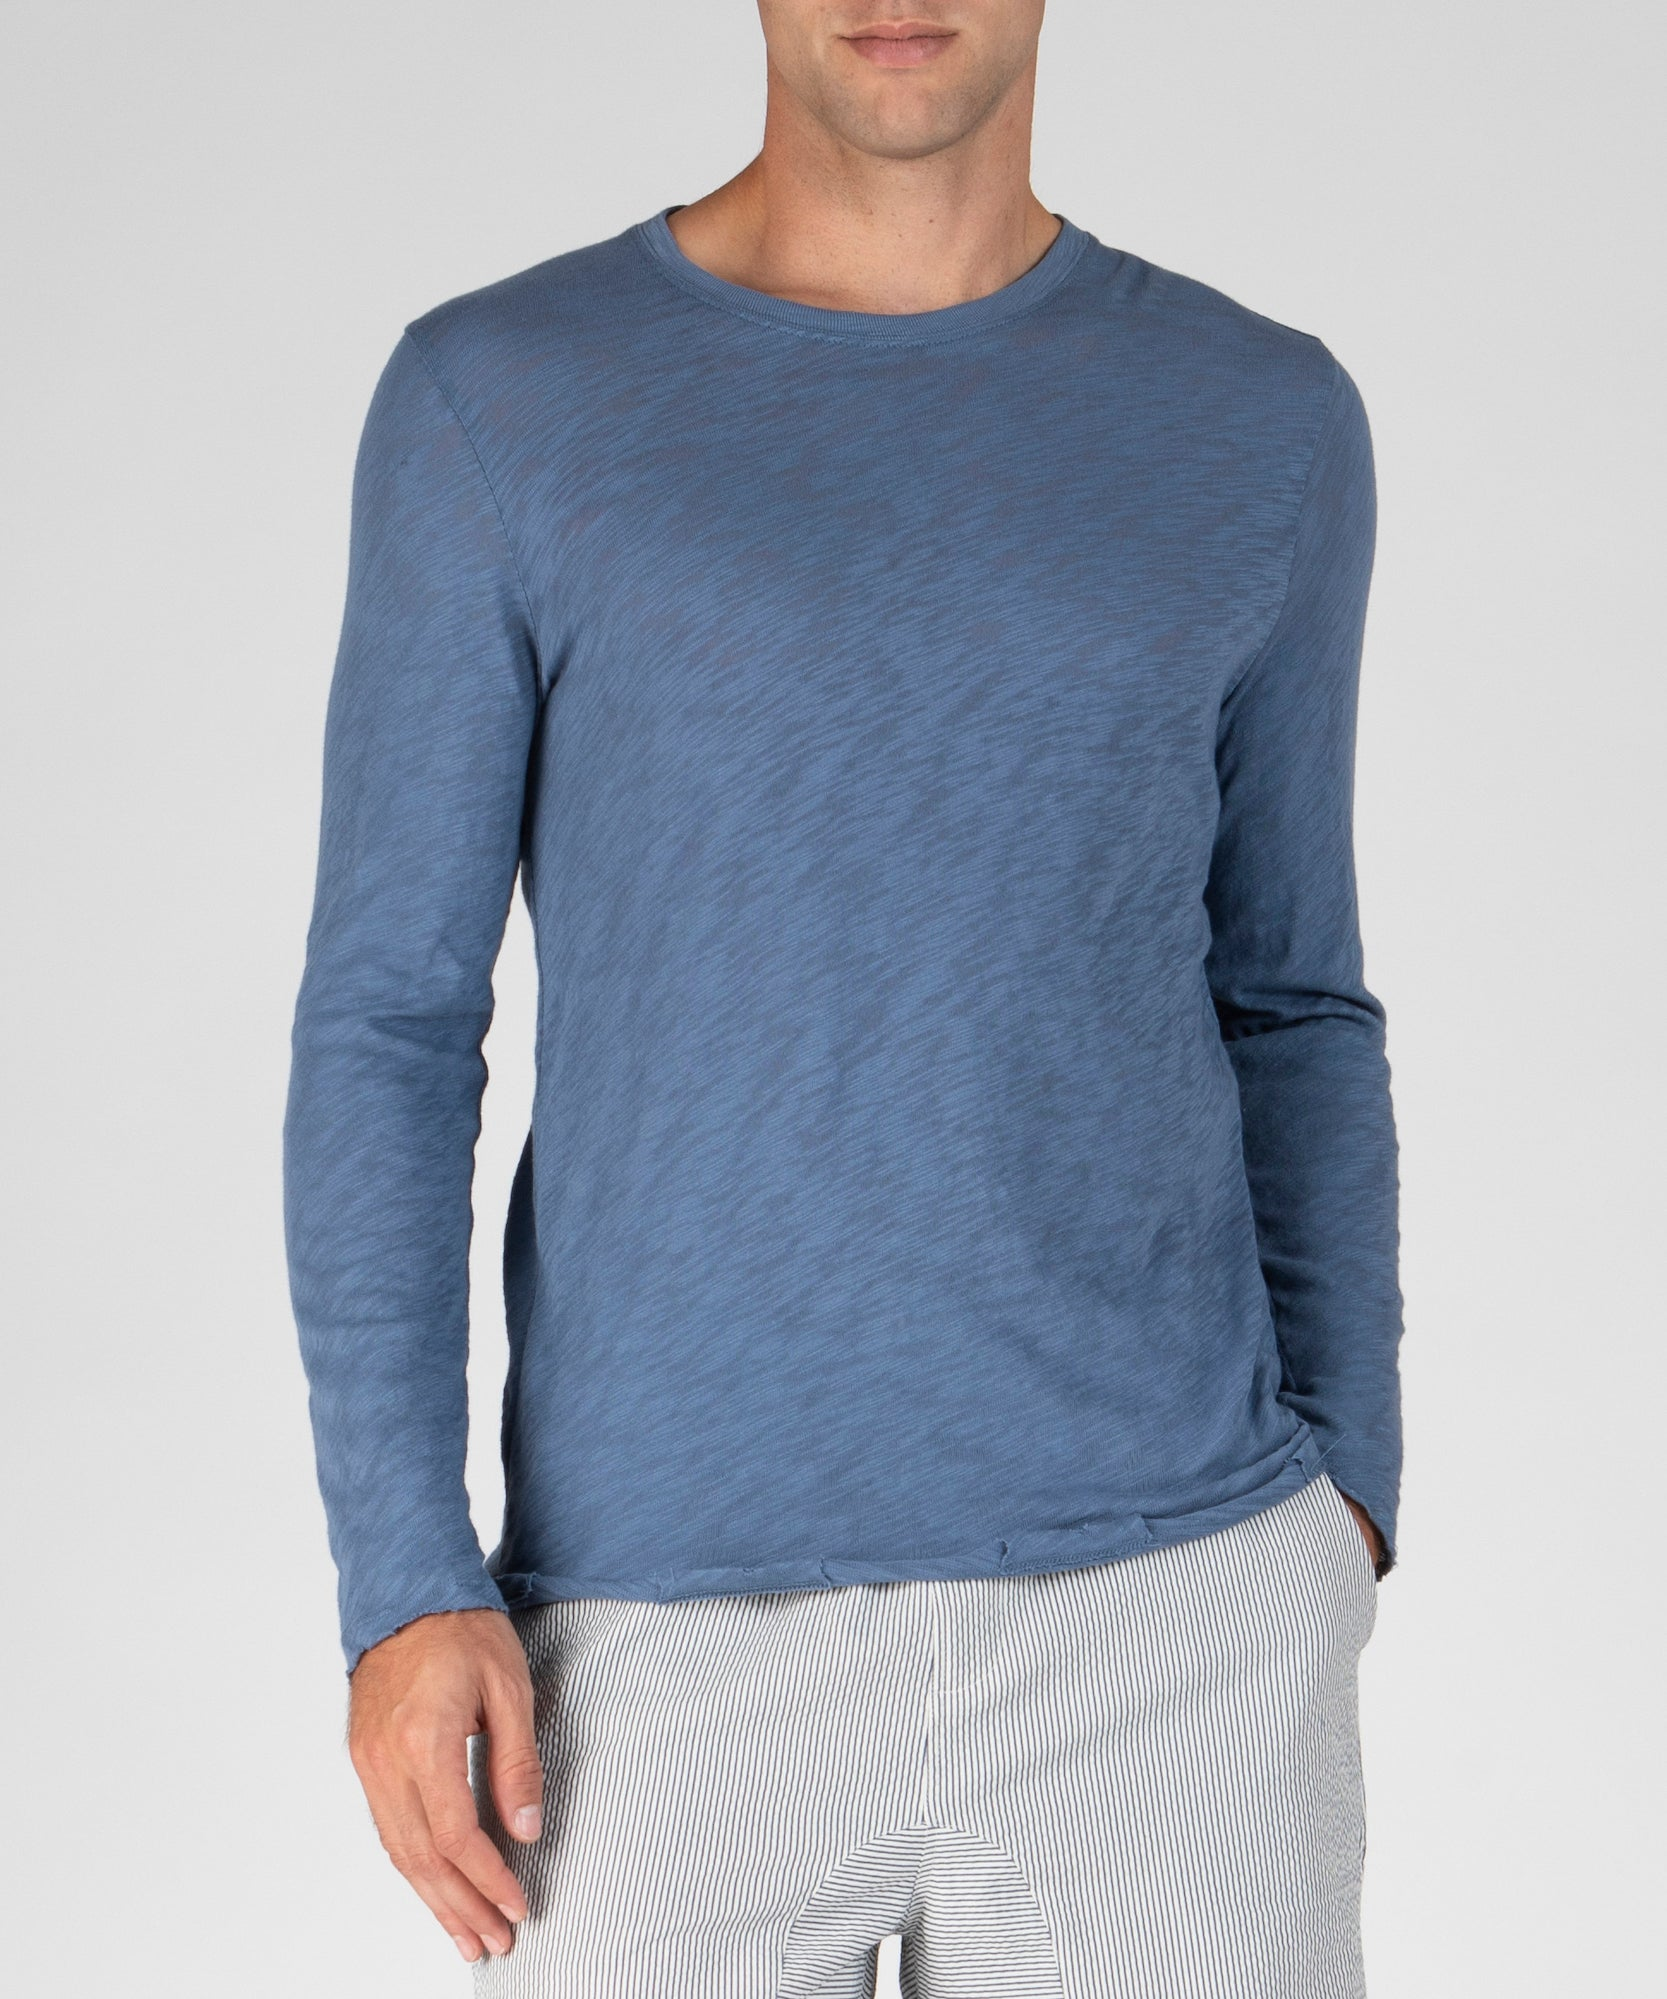 Harbour Blue Slub Jersey Destroyed Wash Tee - Men's Cotton Long Sleeve Tee by ATM Anthony Thomas Melillo